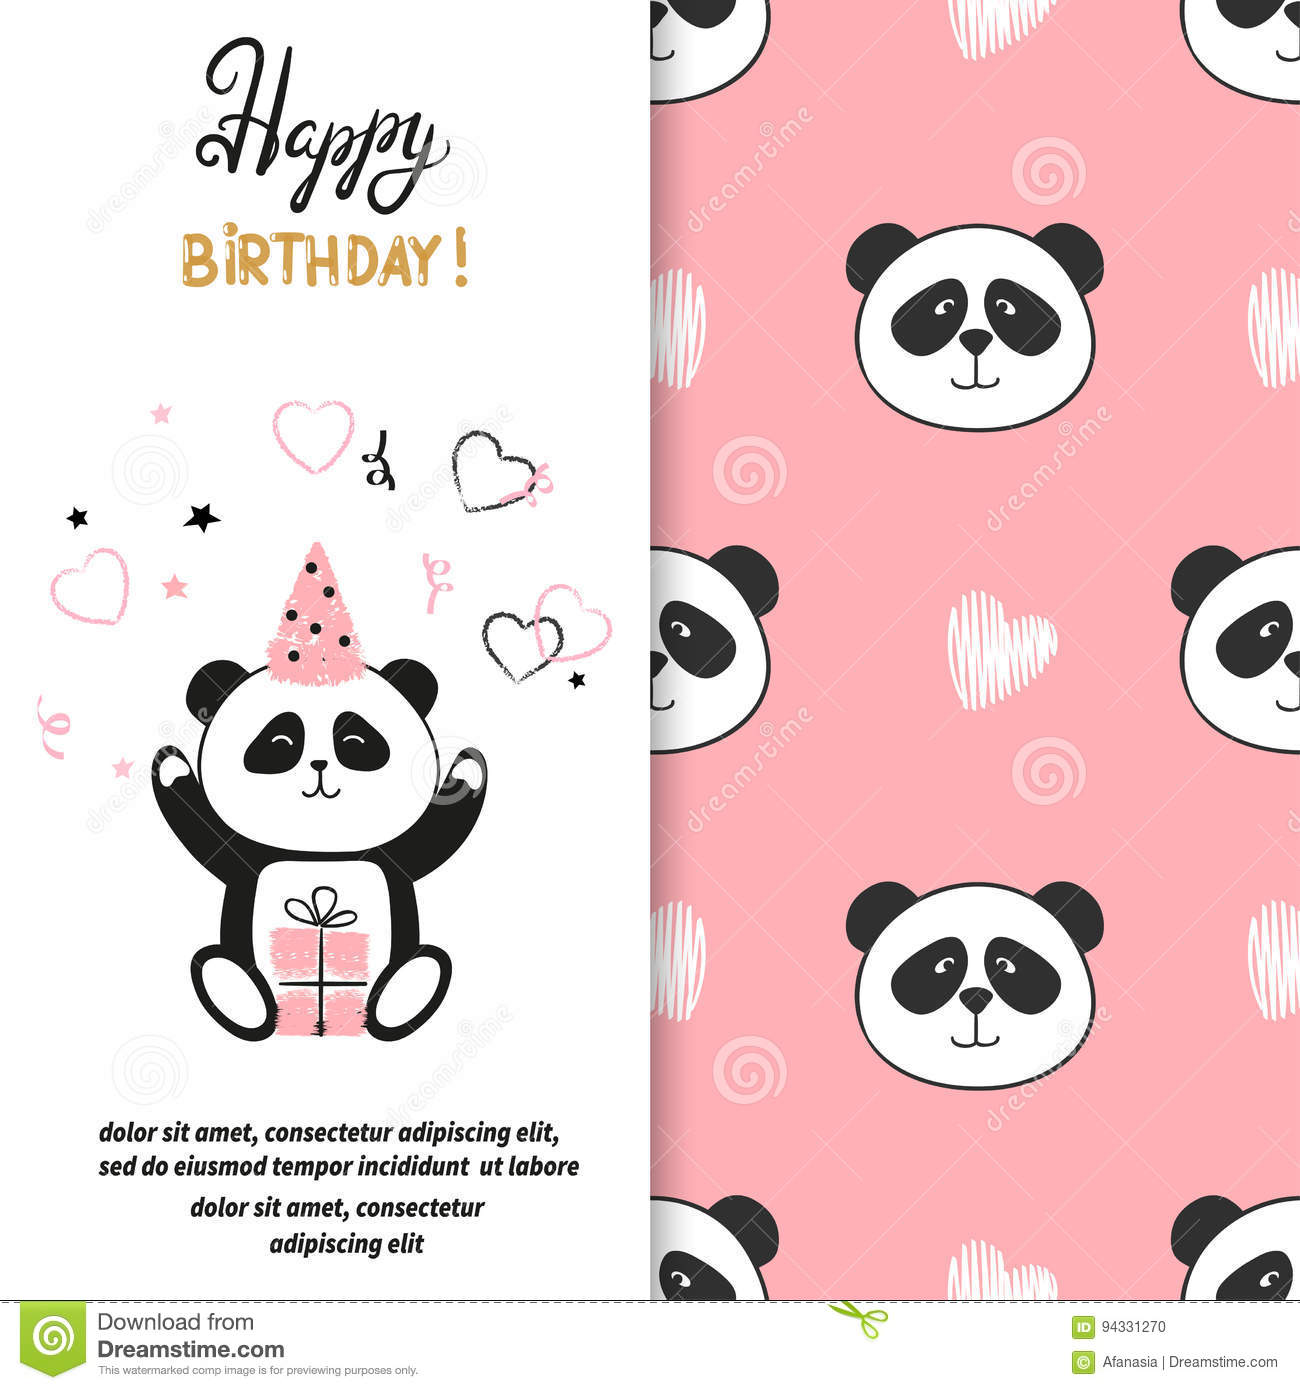 Happy Birthday greeting card design with cute panda bear.